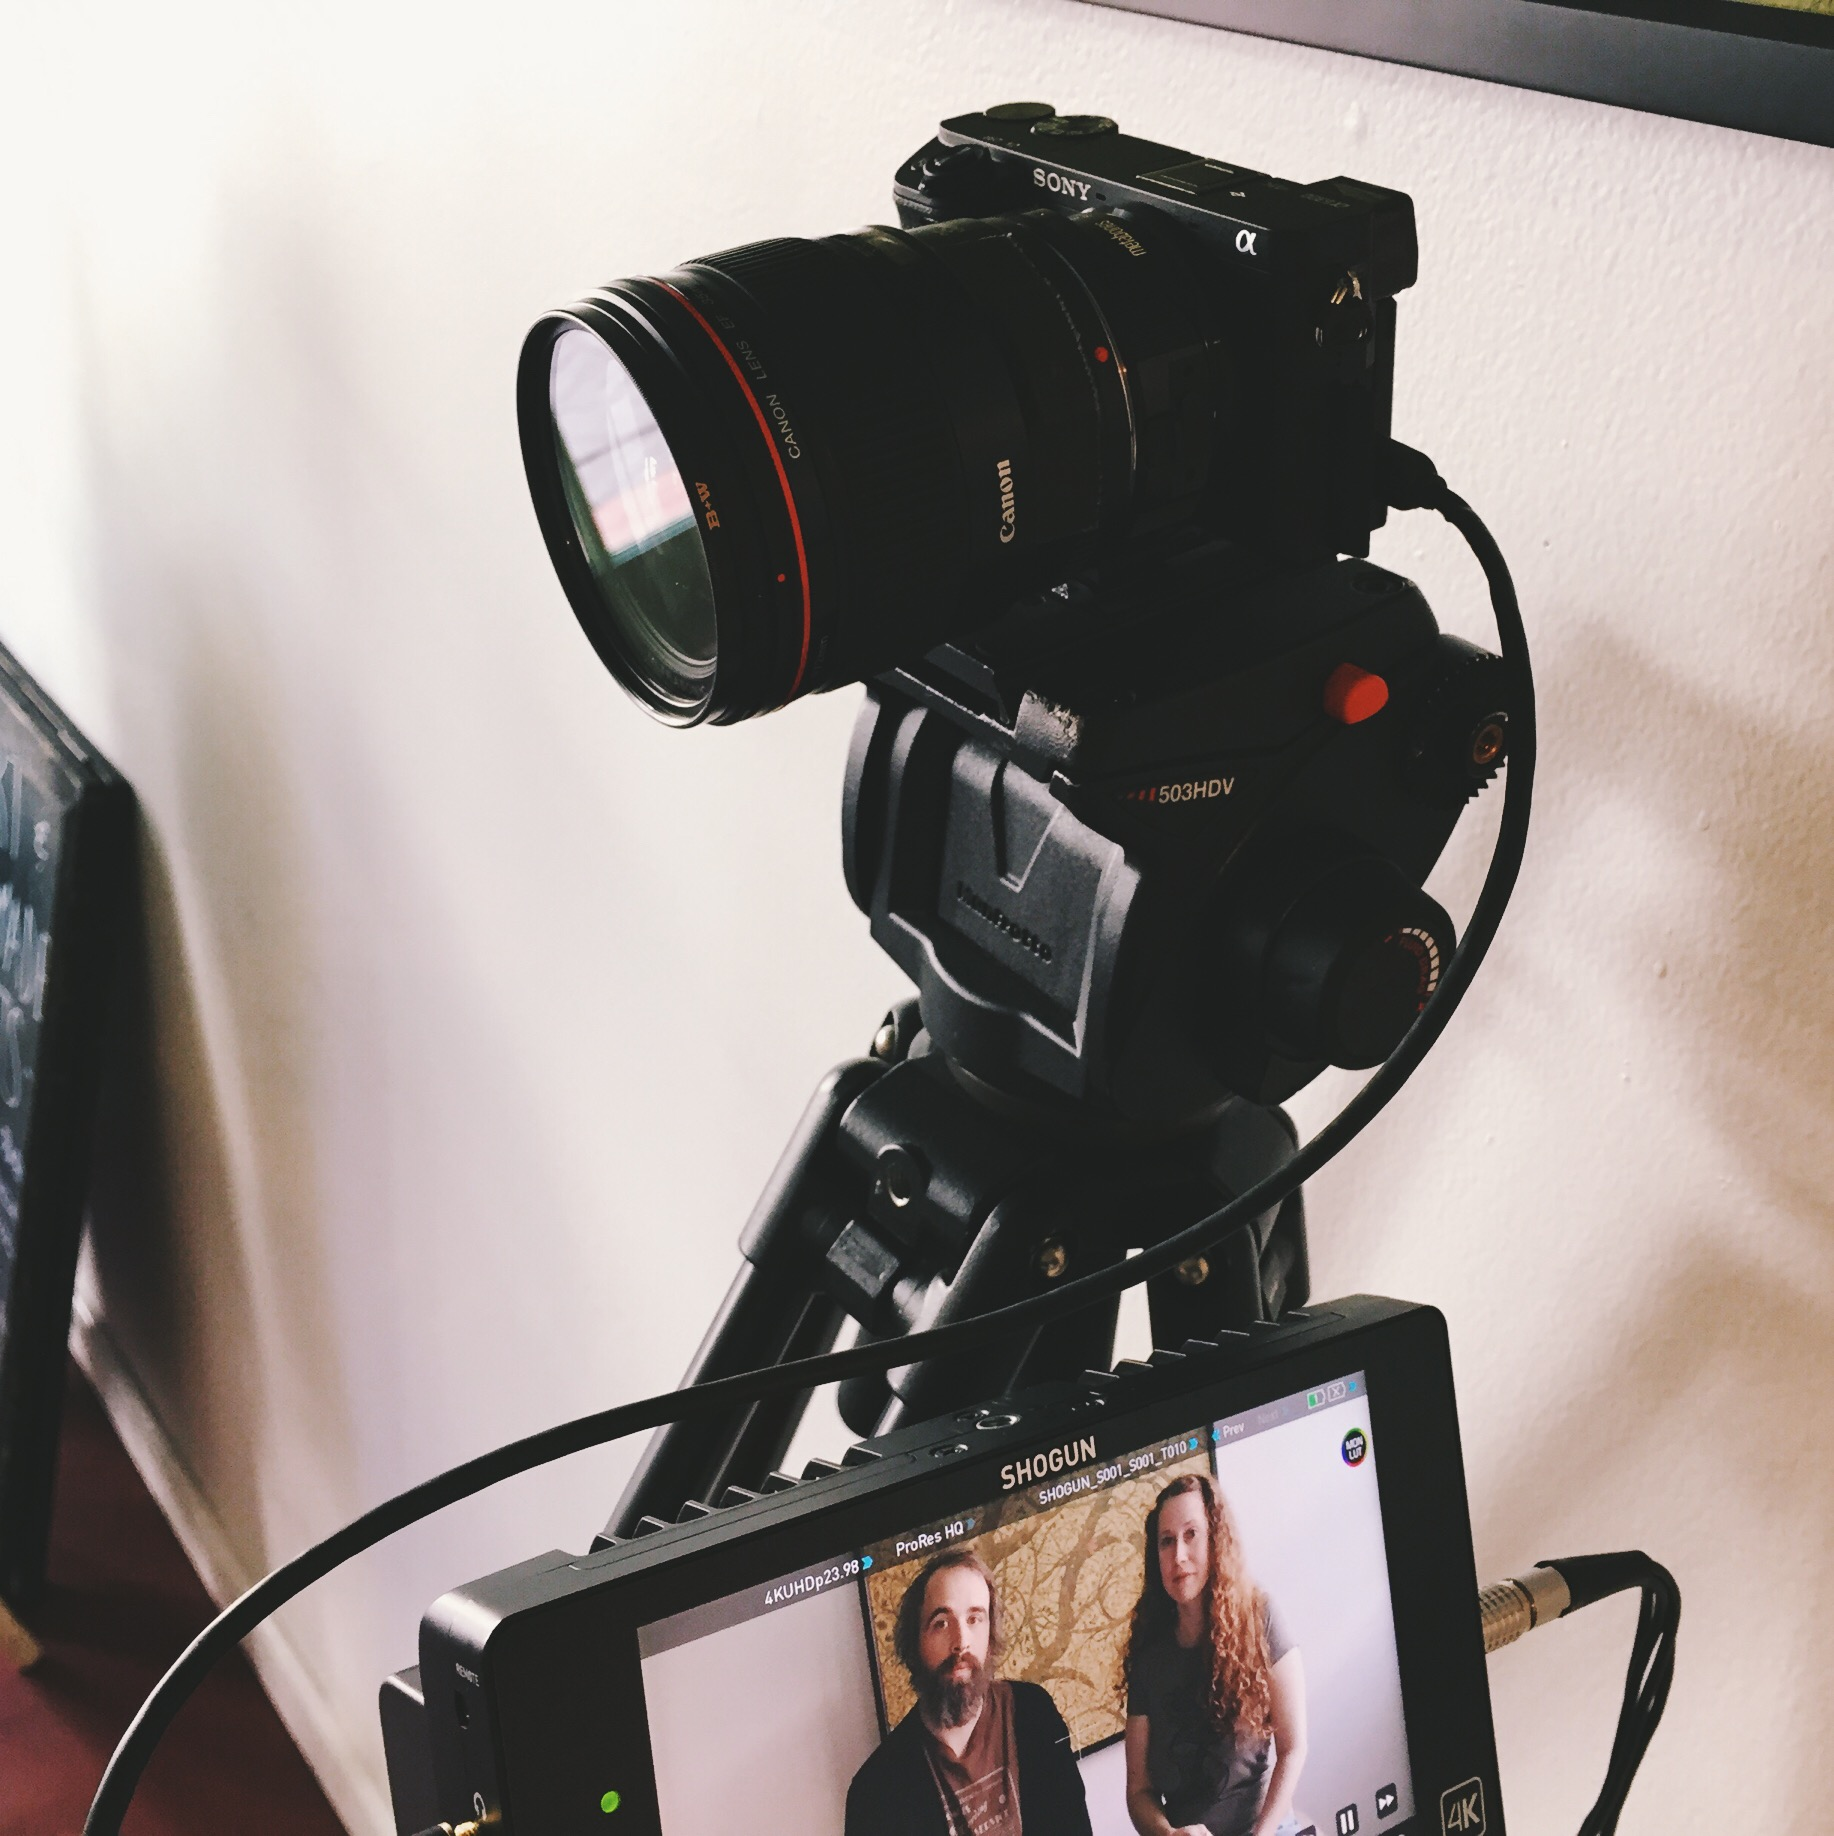 The Benefits of Working with the Sony a6300 and Atomos